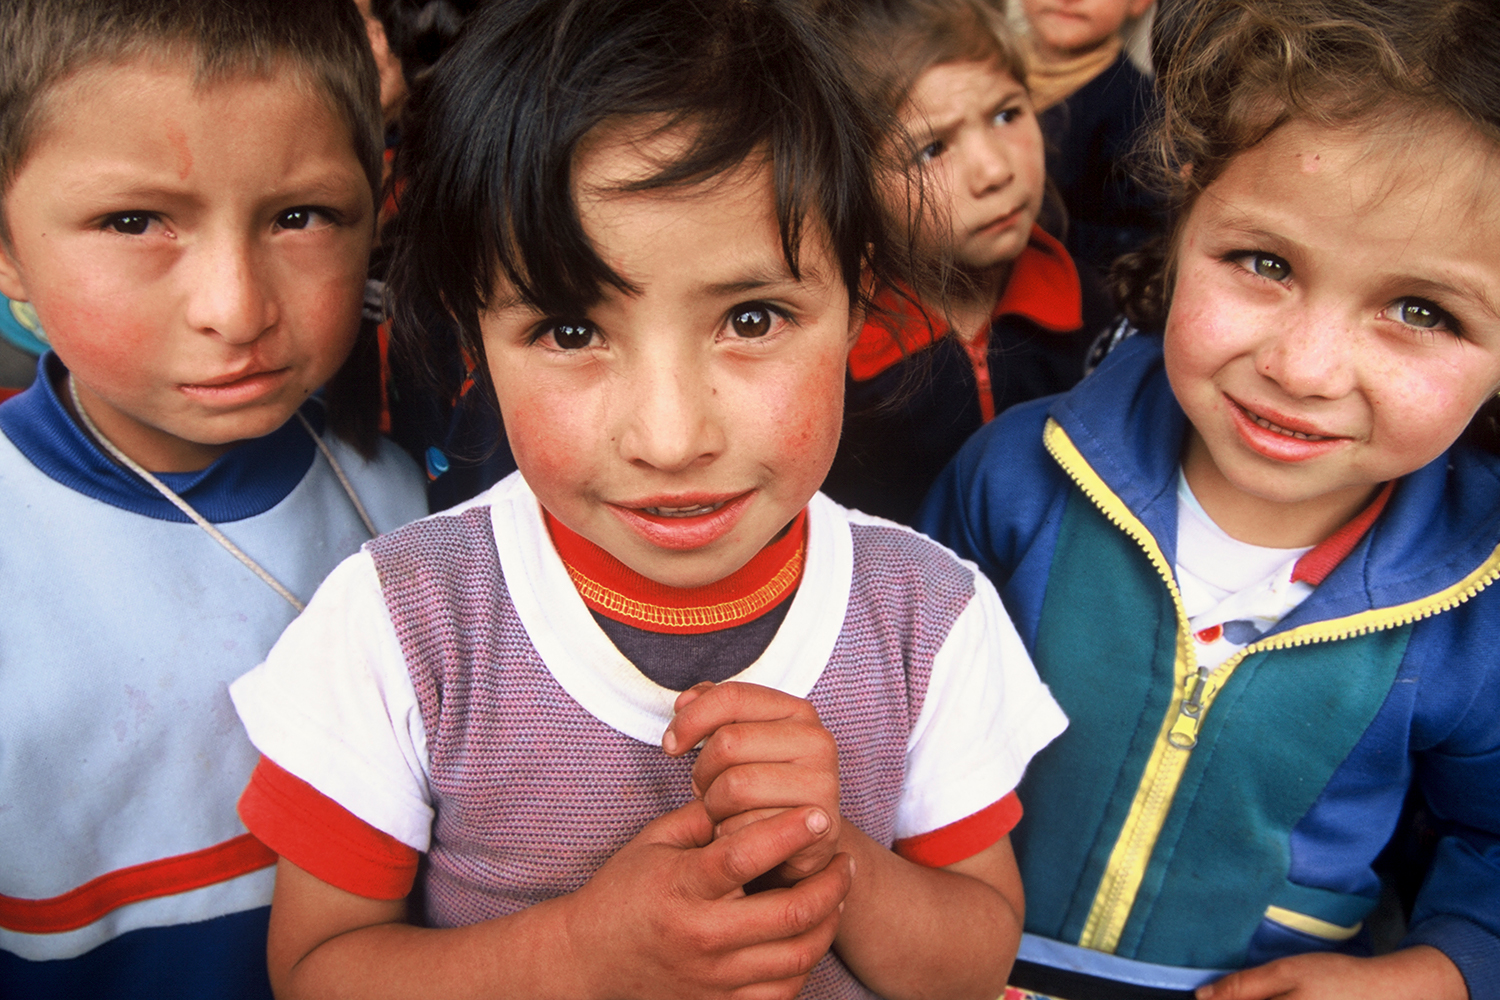 Kindergarten children in Boyacá, Colombia, 2004.